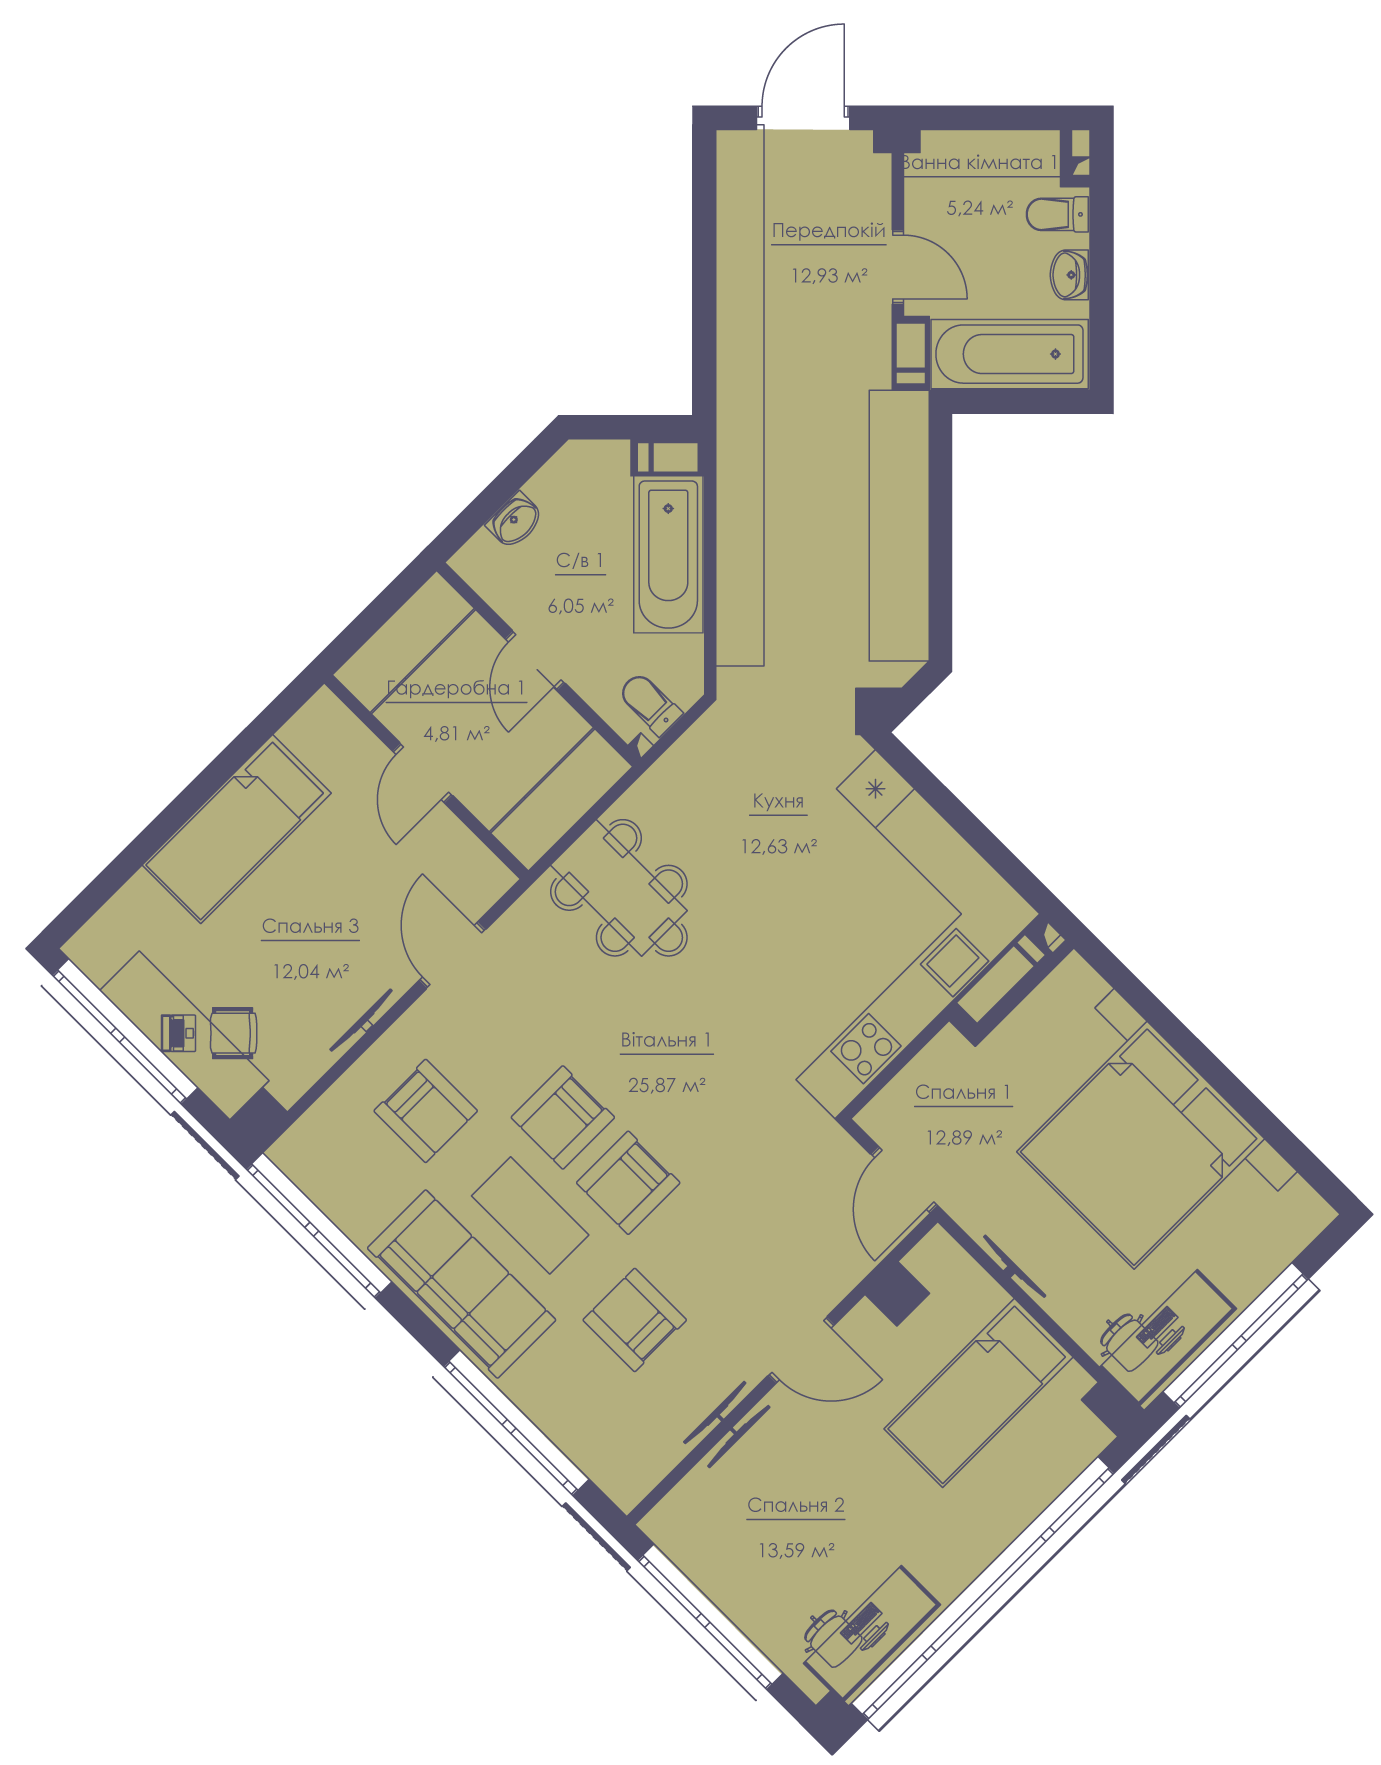 Apartment layout KV_14_2.4a_1_1_2-1